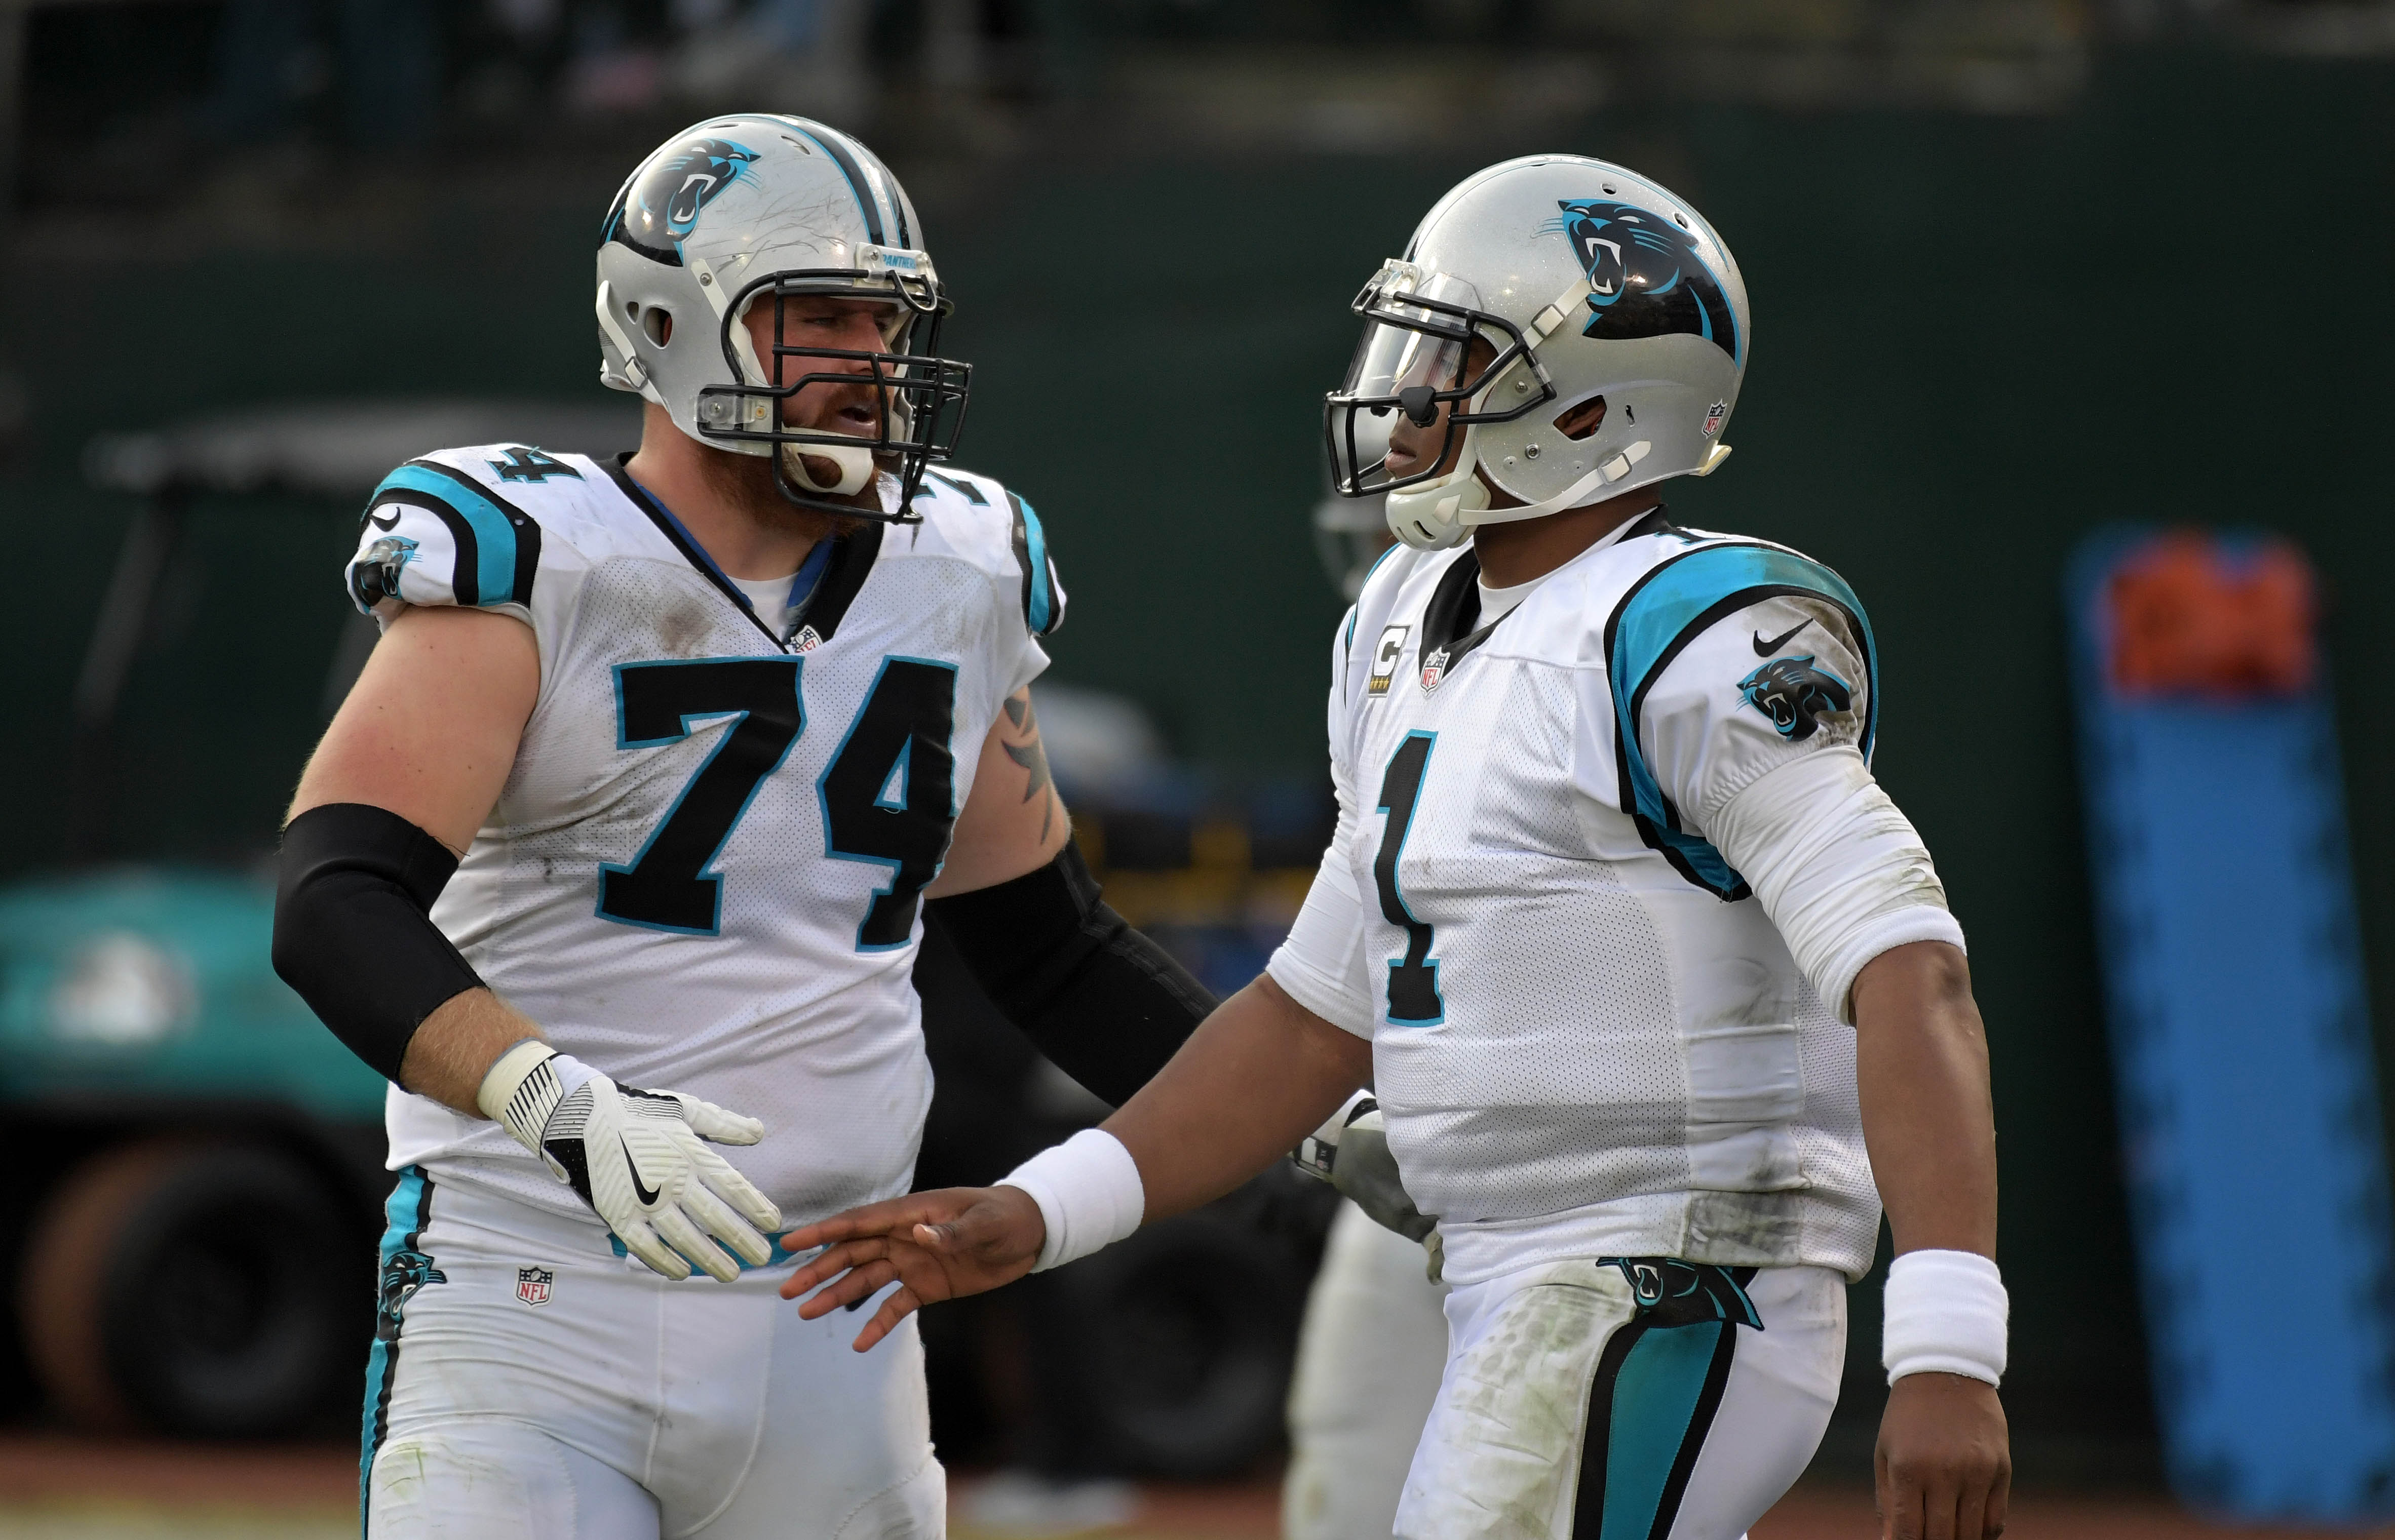 NFL: Carolina Panthers at Oakland Raiders